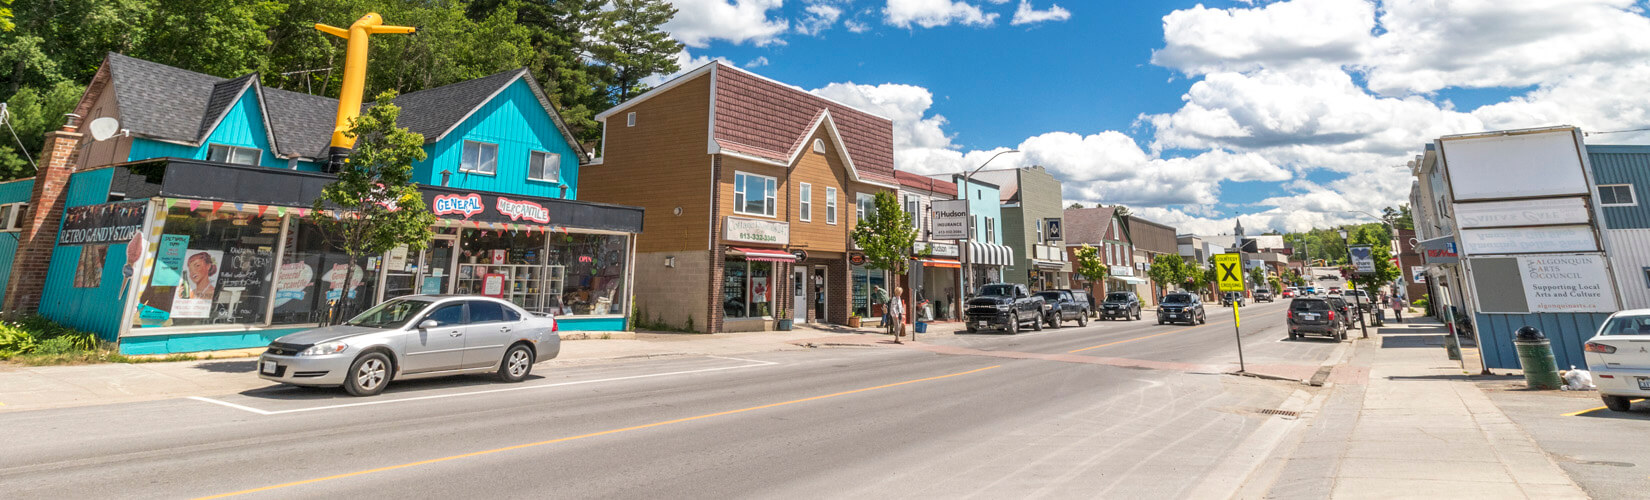 Top 10+ Things to Do in Bancroft You Don't Want to Miss :: I've Been Bit! Travel Blog